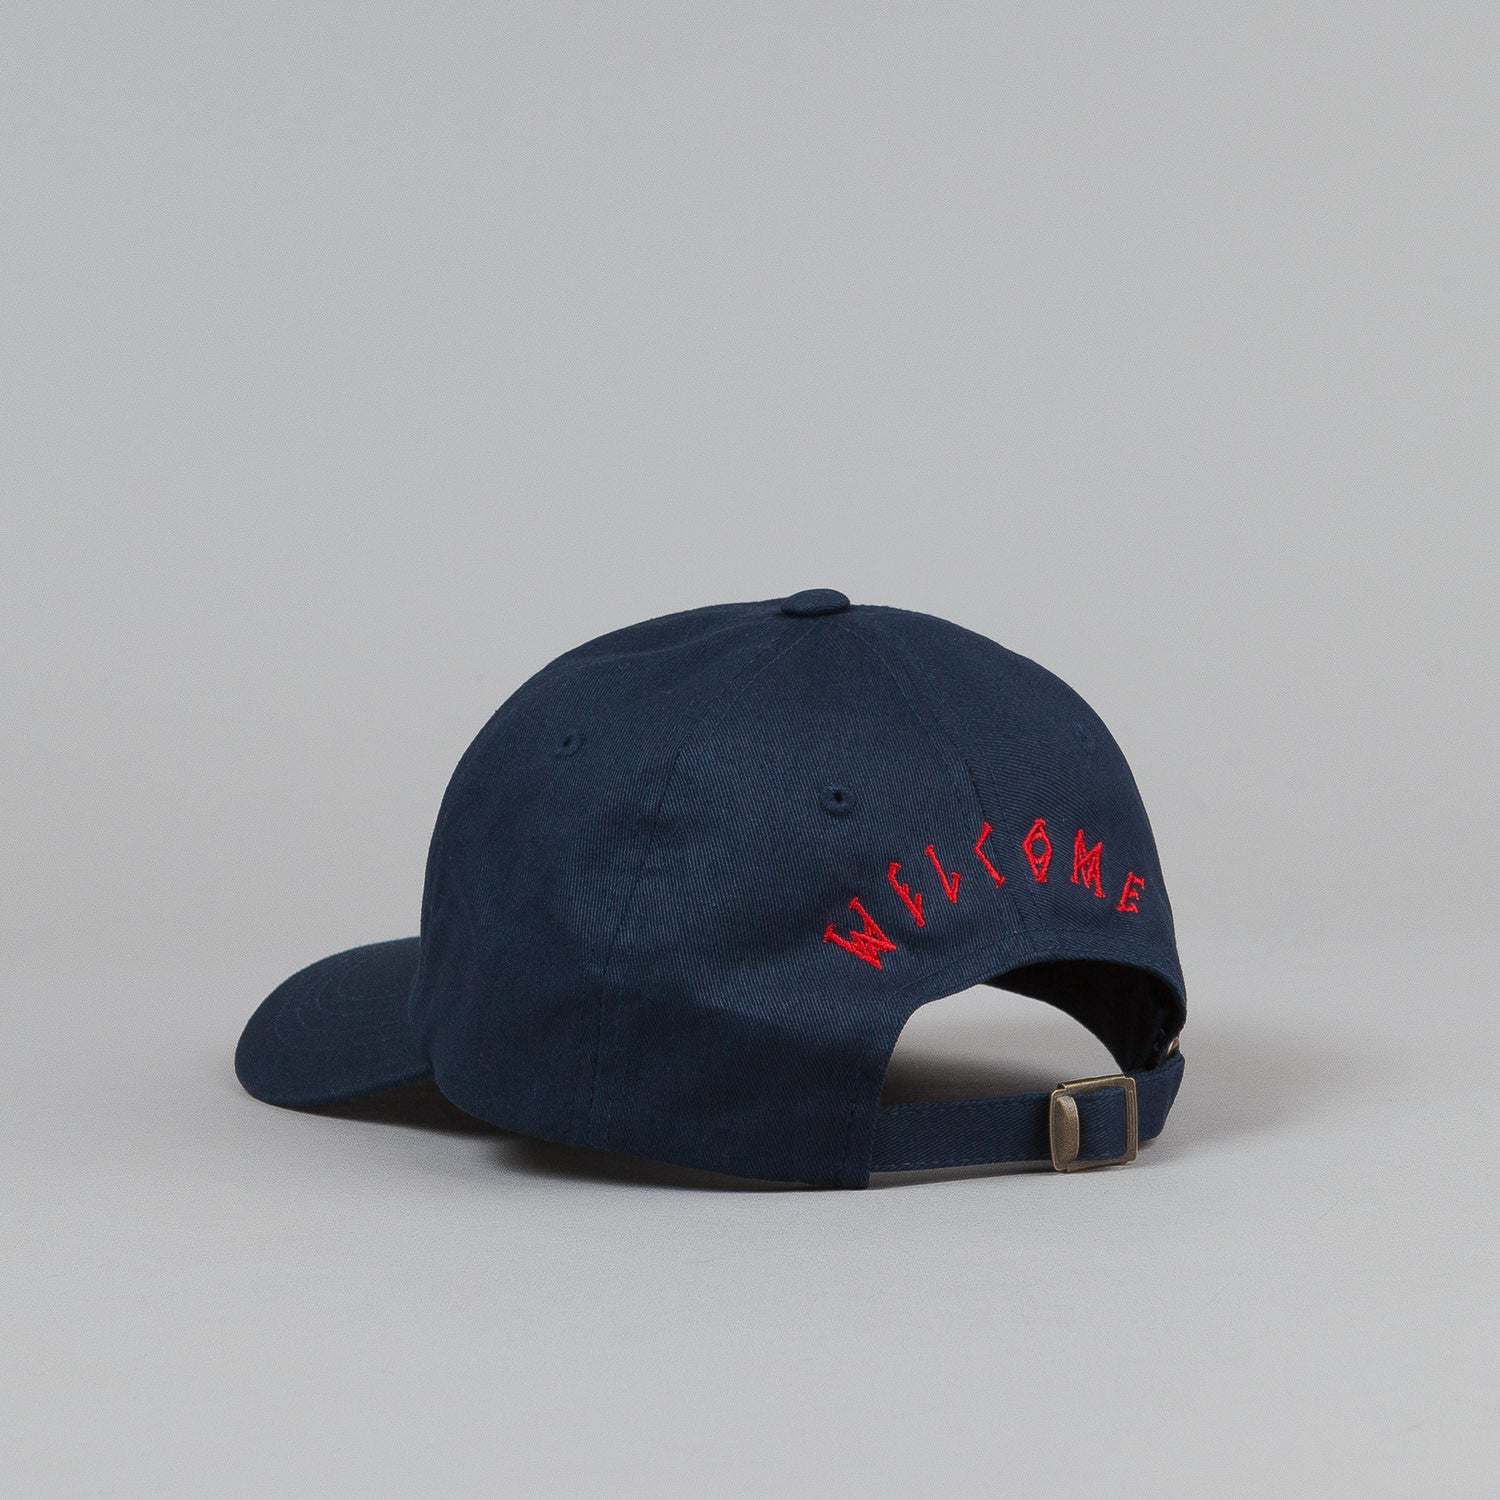 Welcome Rocking Dog Slider Cap - Navy / Red